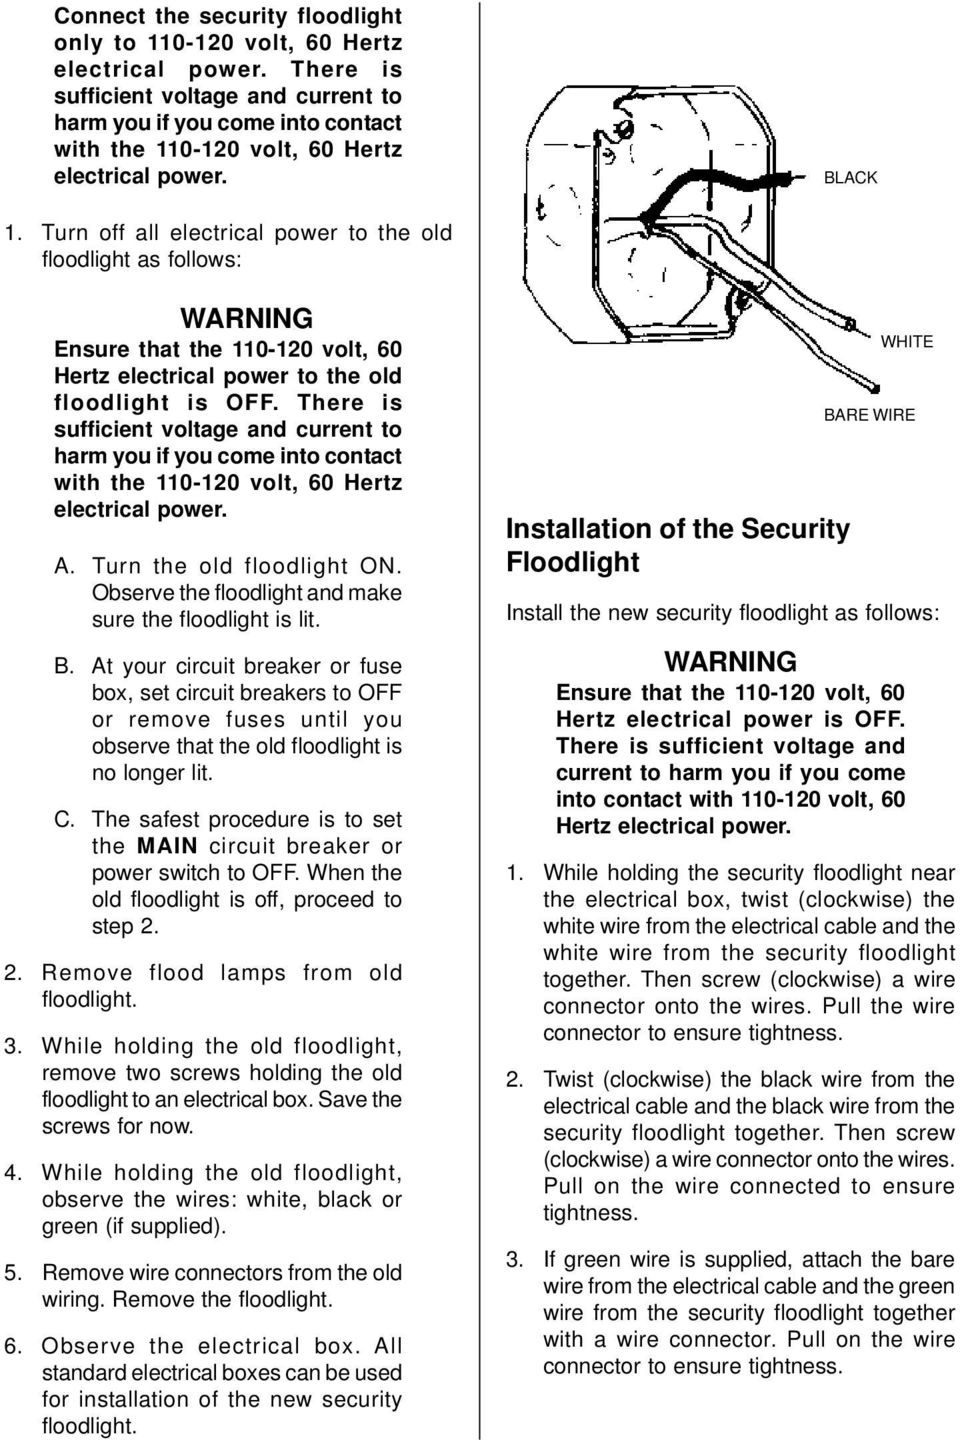 medium resolution of turn off all electrical power to the old floodlight as follows warning ensure that the